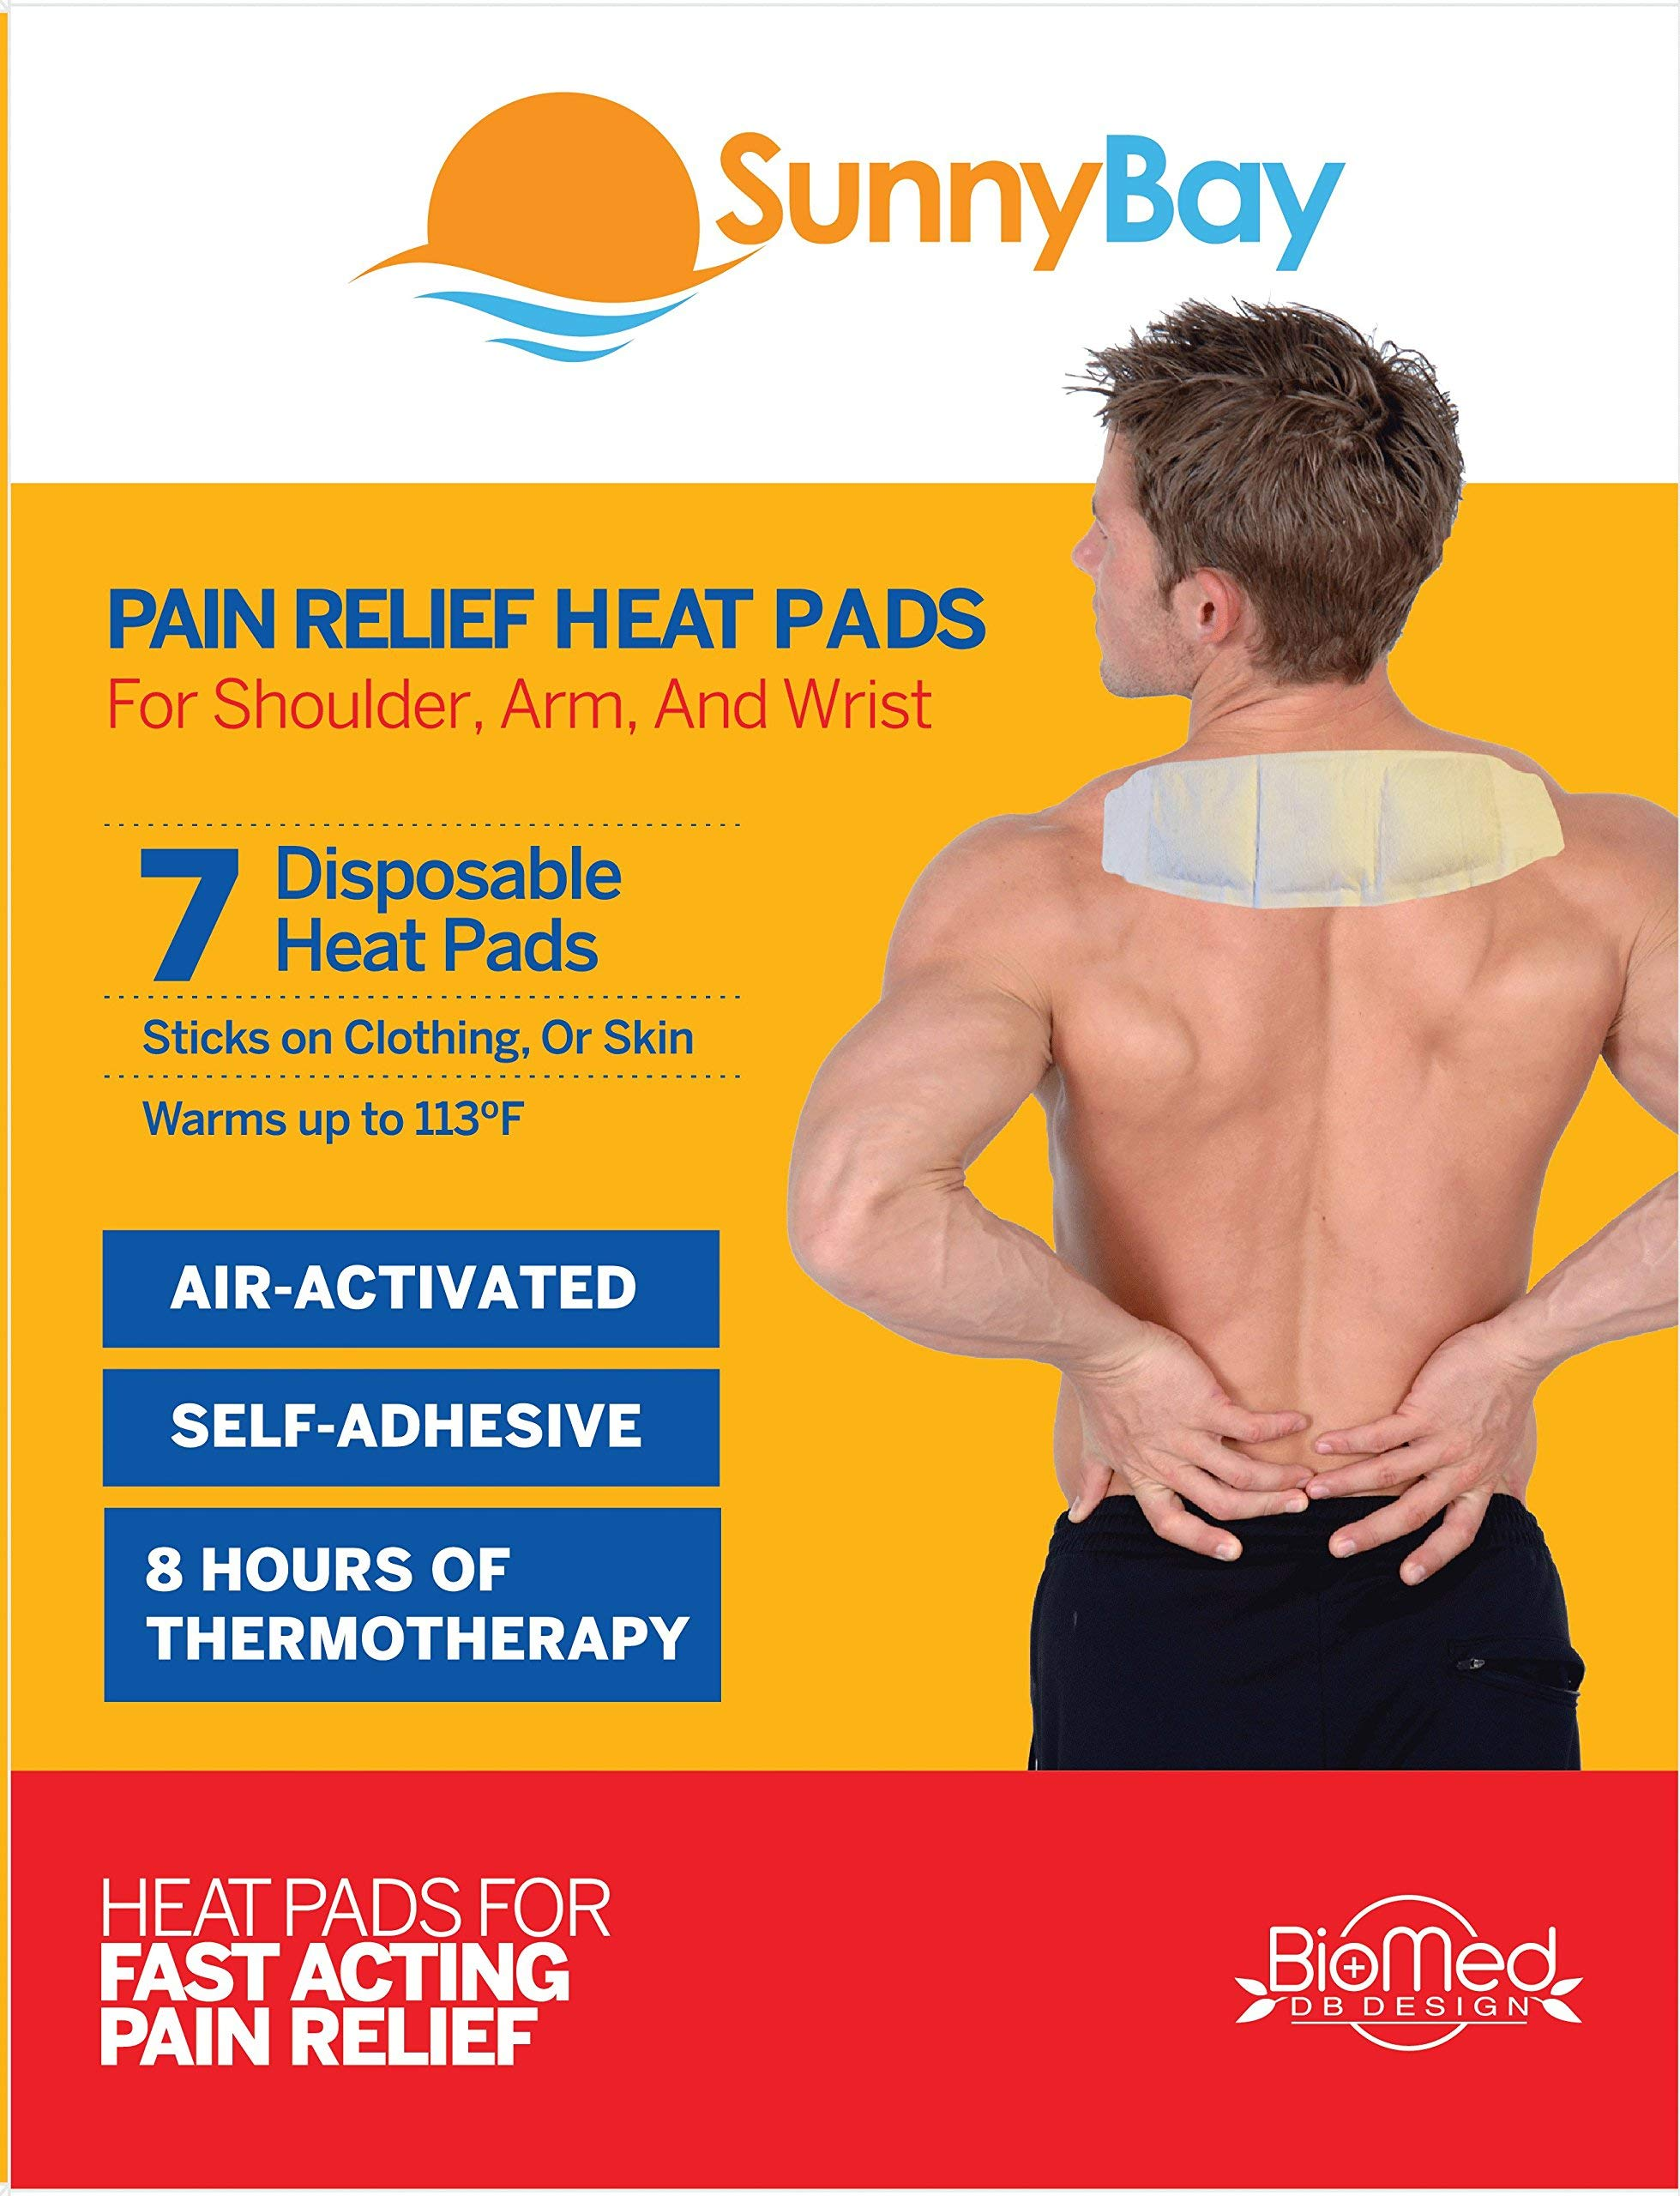 Sunny Bay Adhesive Heat, Pads, White, Pain Relief, 13 Ounce by Sunny Bay (Image #1)